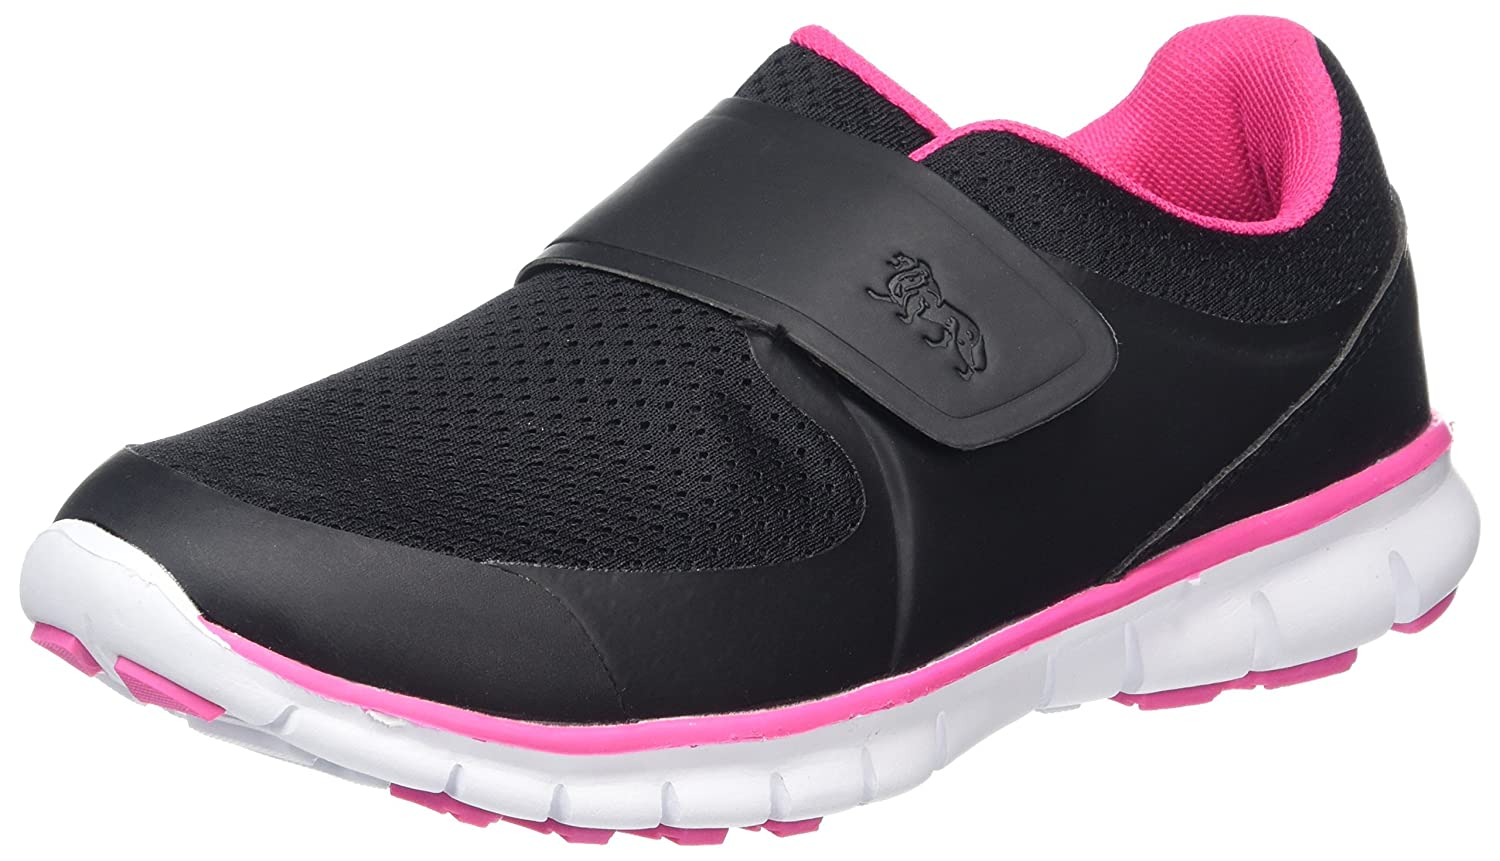 Lonsdale Lima Velcro Chaussures Multisport Outdoor Fille